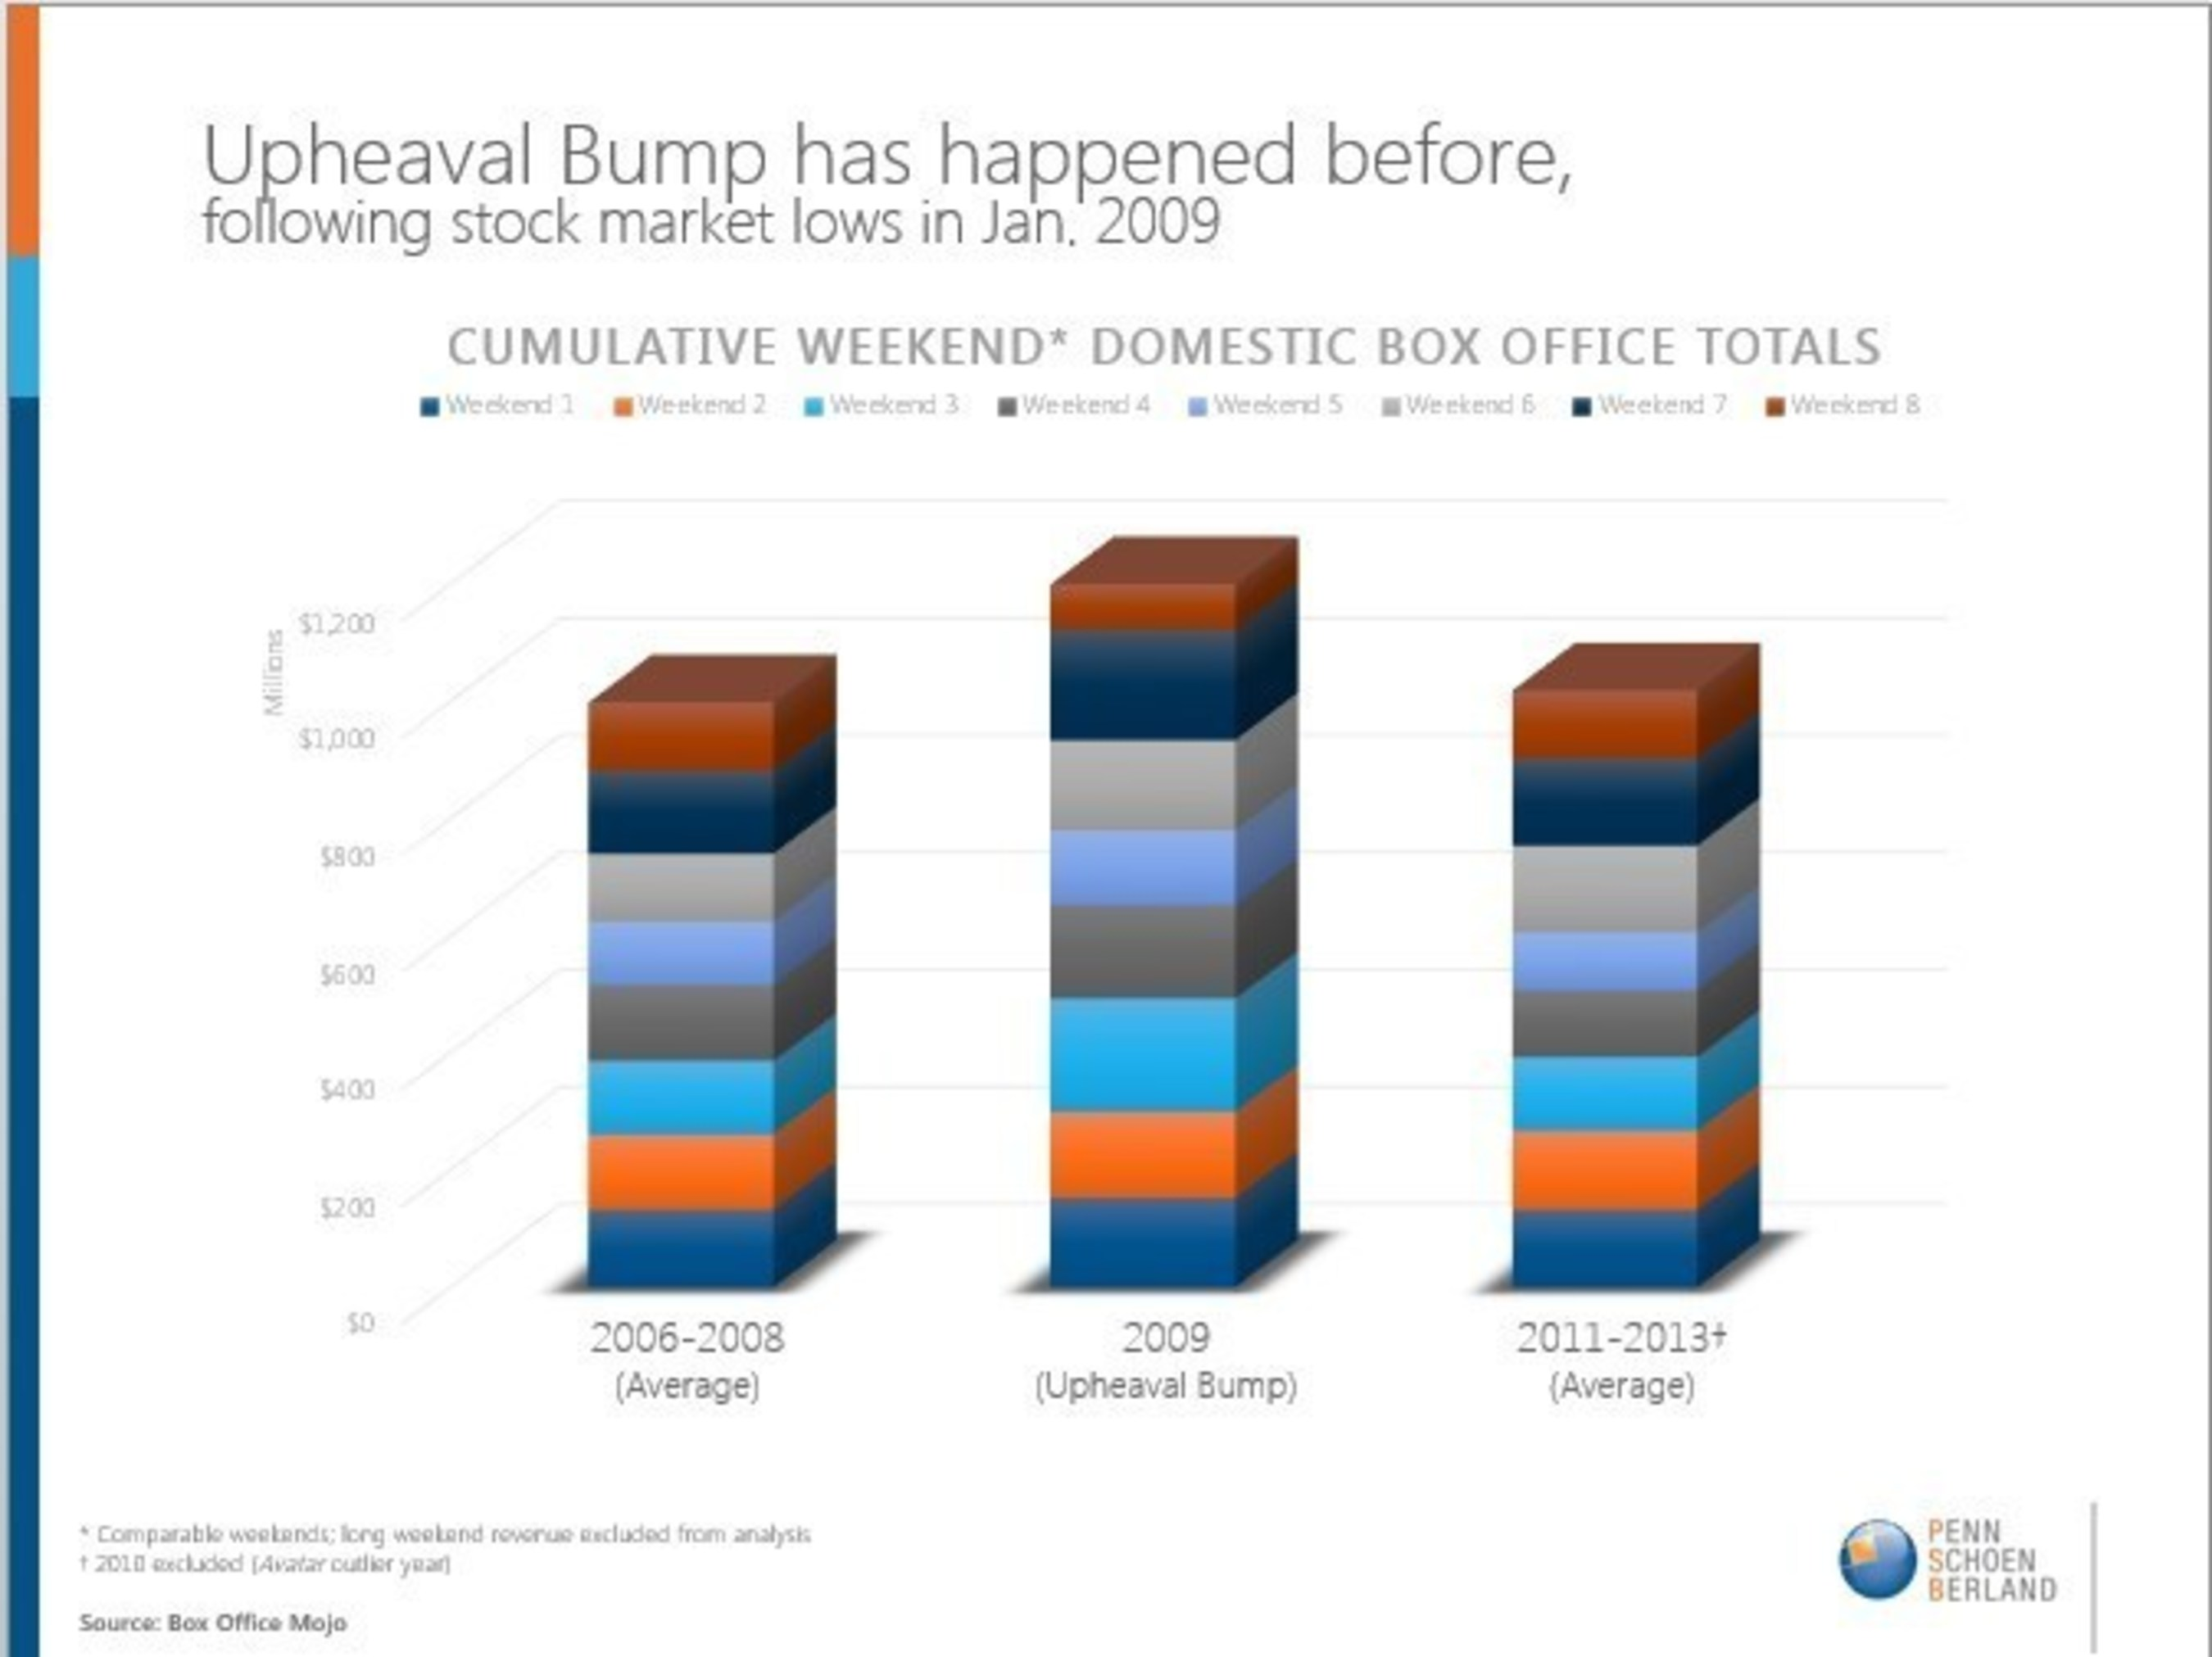 Cumulative weekend domestic box office totals following stock market lows in January 2009